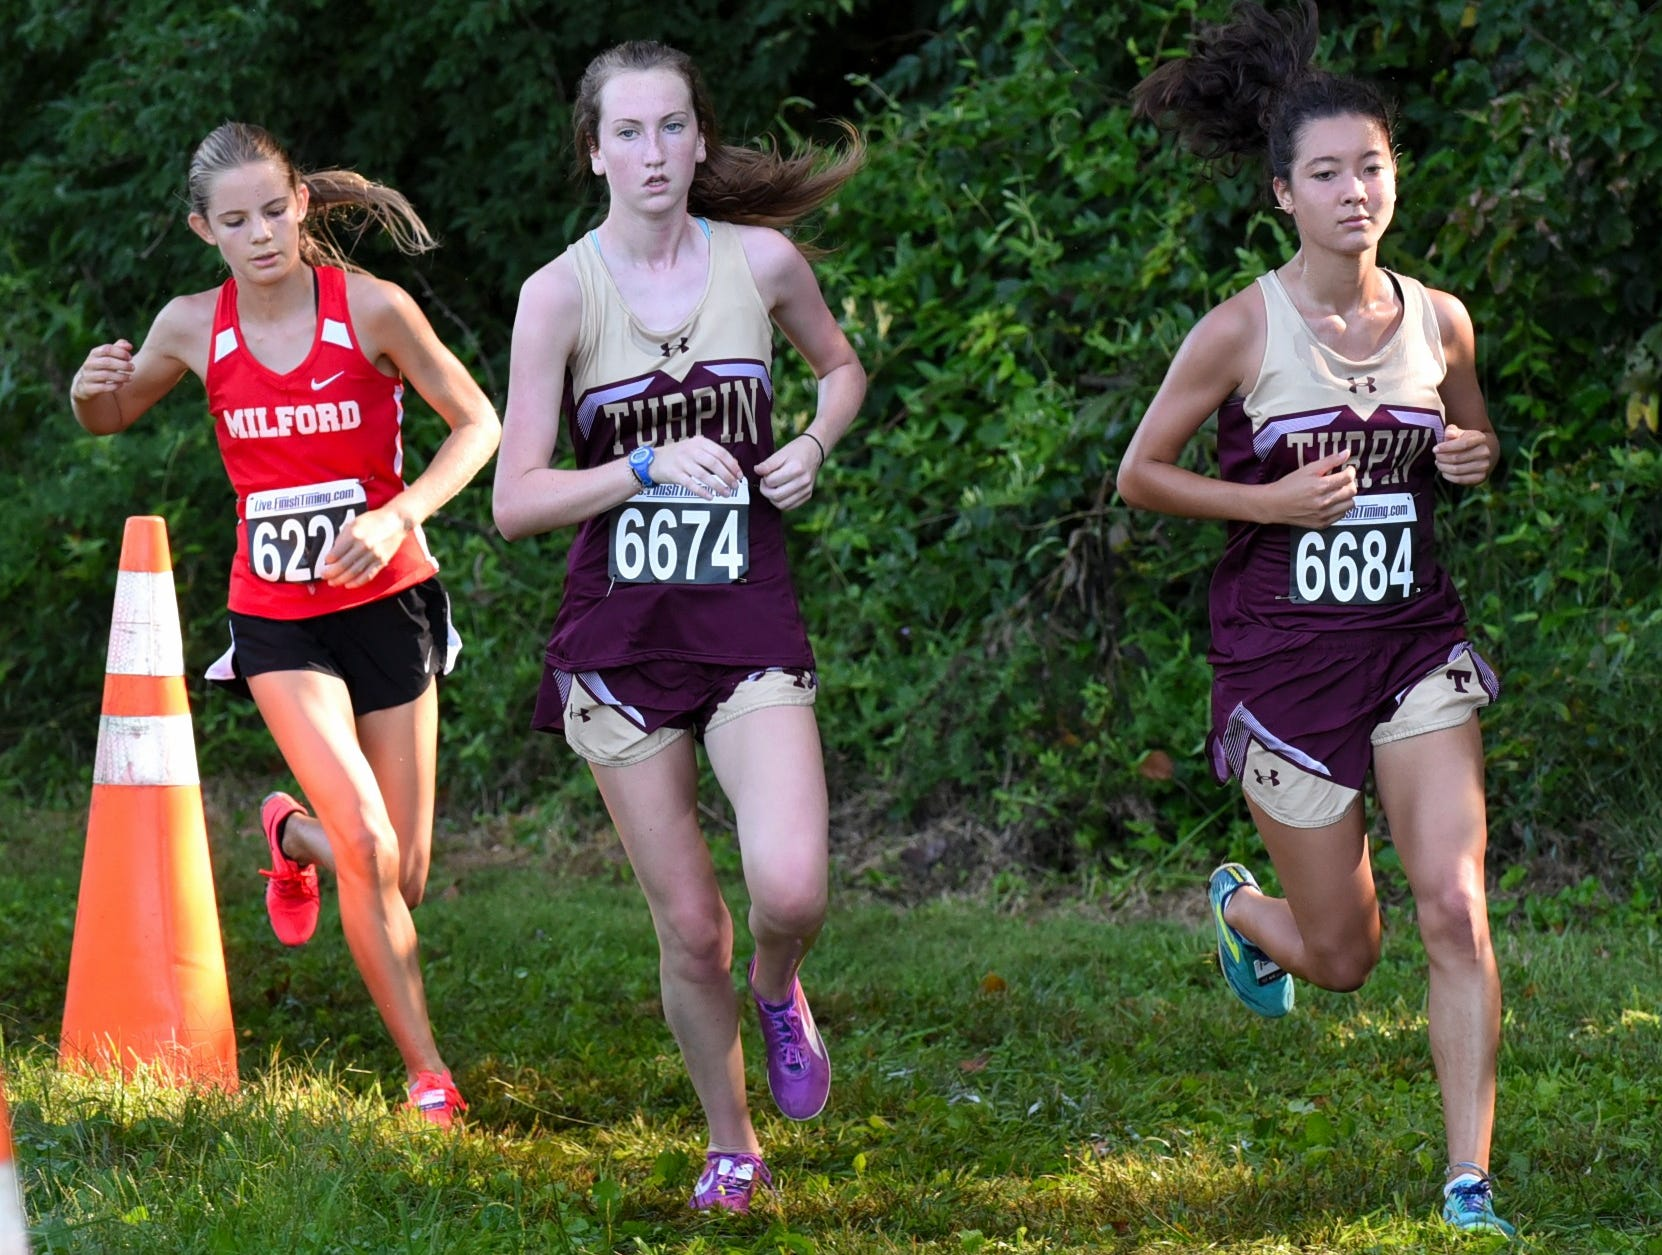 Jayne Maxwell and Isabel Shim of Turpin run in tandem in the Varsity Girls 5K race at the 2018 Milford Cross Country Invitational, Sept. 15, 2018.